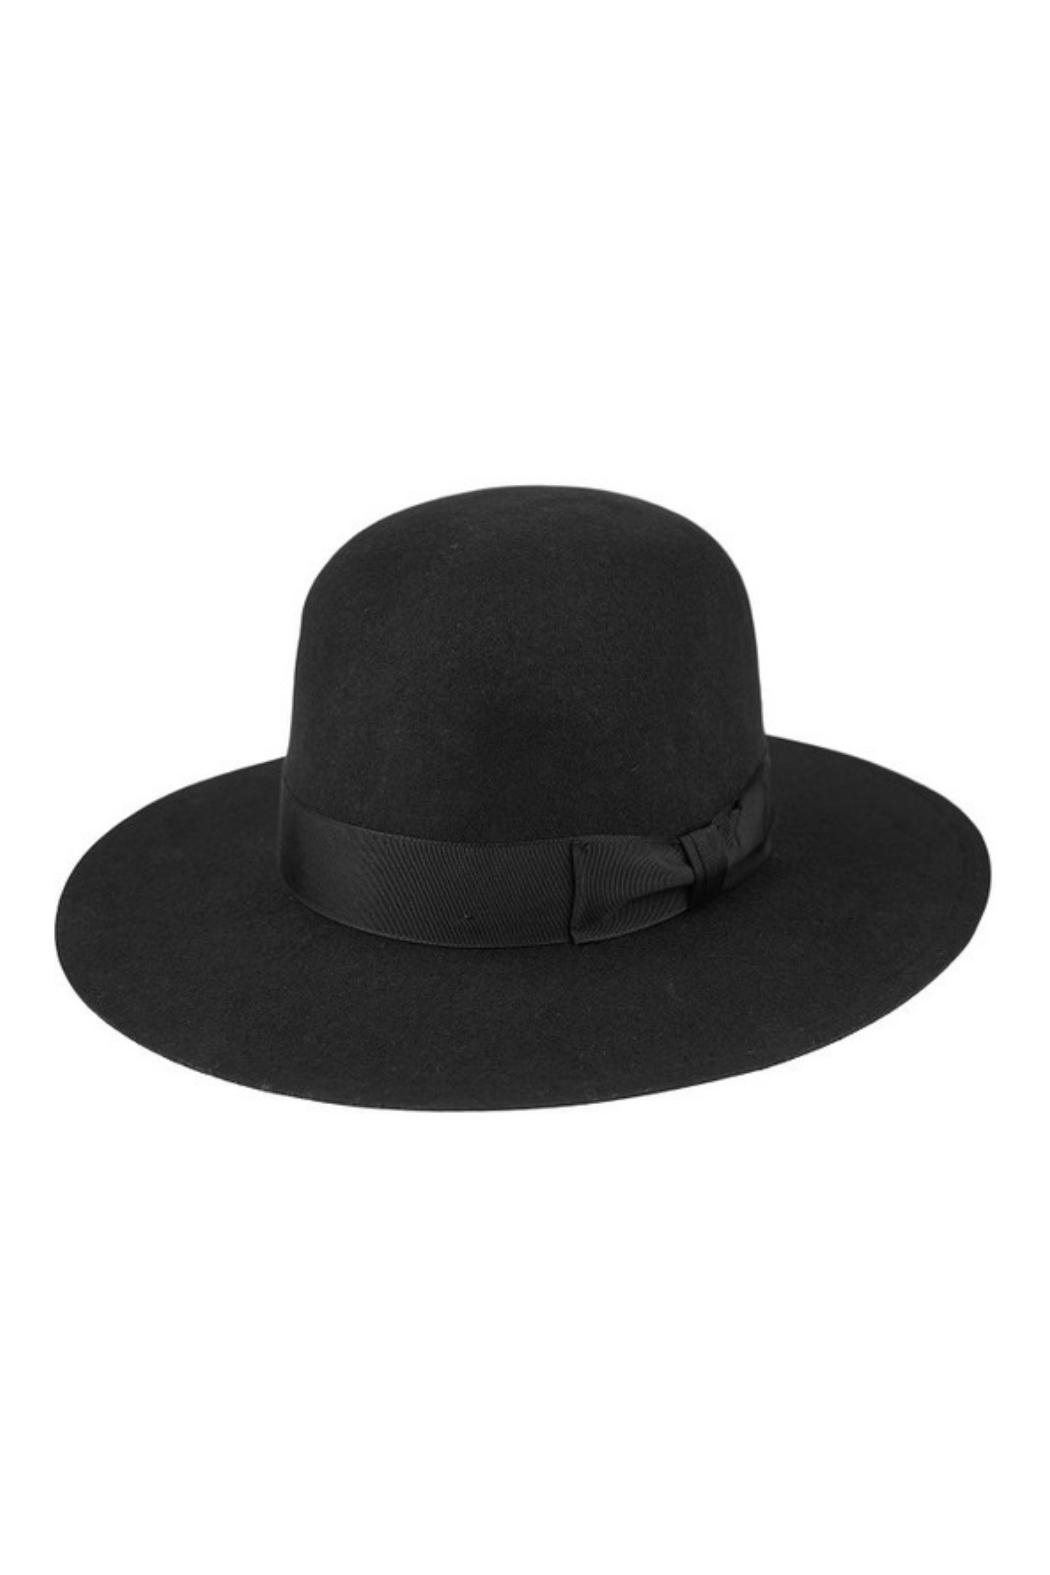 Olive   Pique Wide Brim Bowler from Texas by POE and Arrows — Shoptiques cf4f9494861